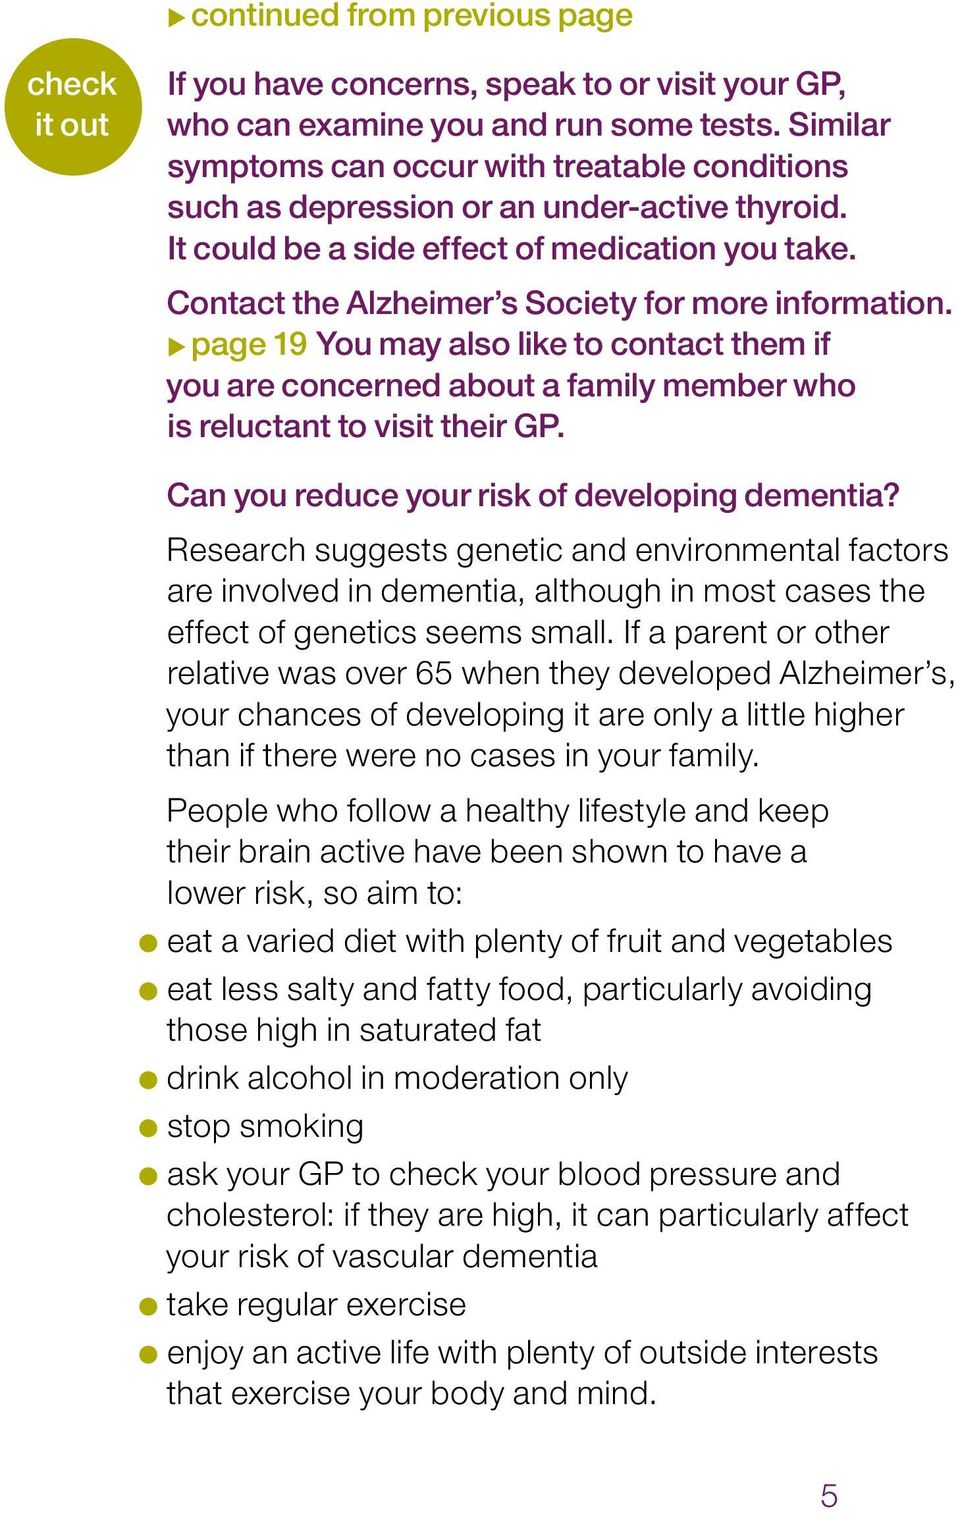 Contact the Alzheimer s Society for more information. upage 19 You may also like to contact them if you are concerned about a family member who is reluctant to visit their GP.